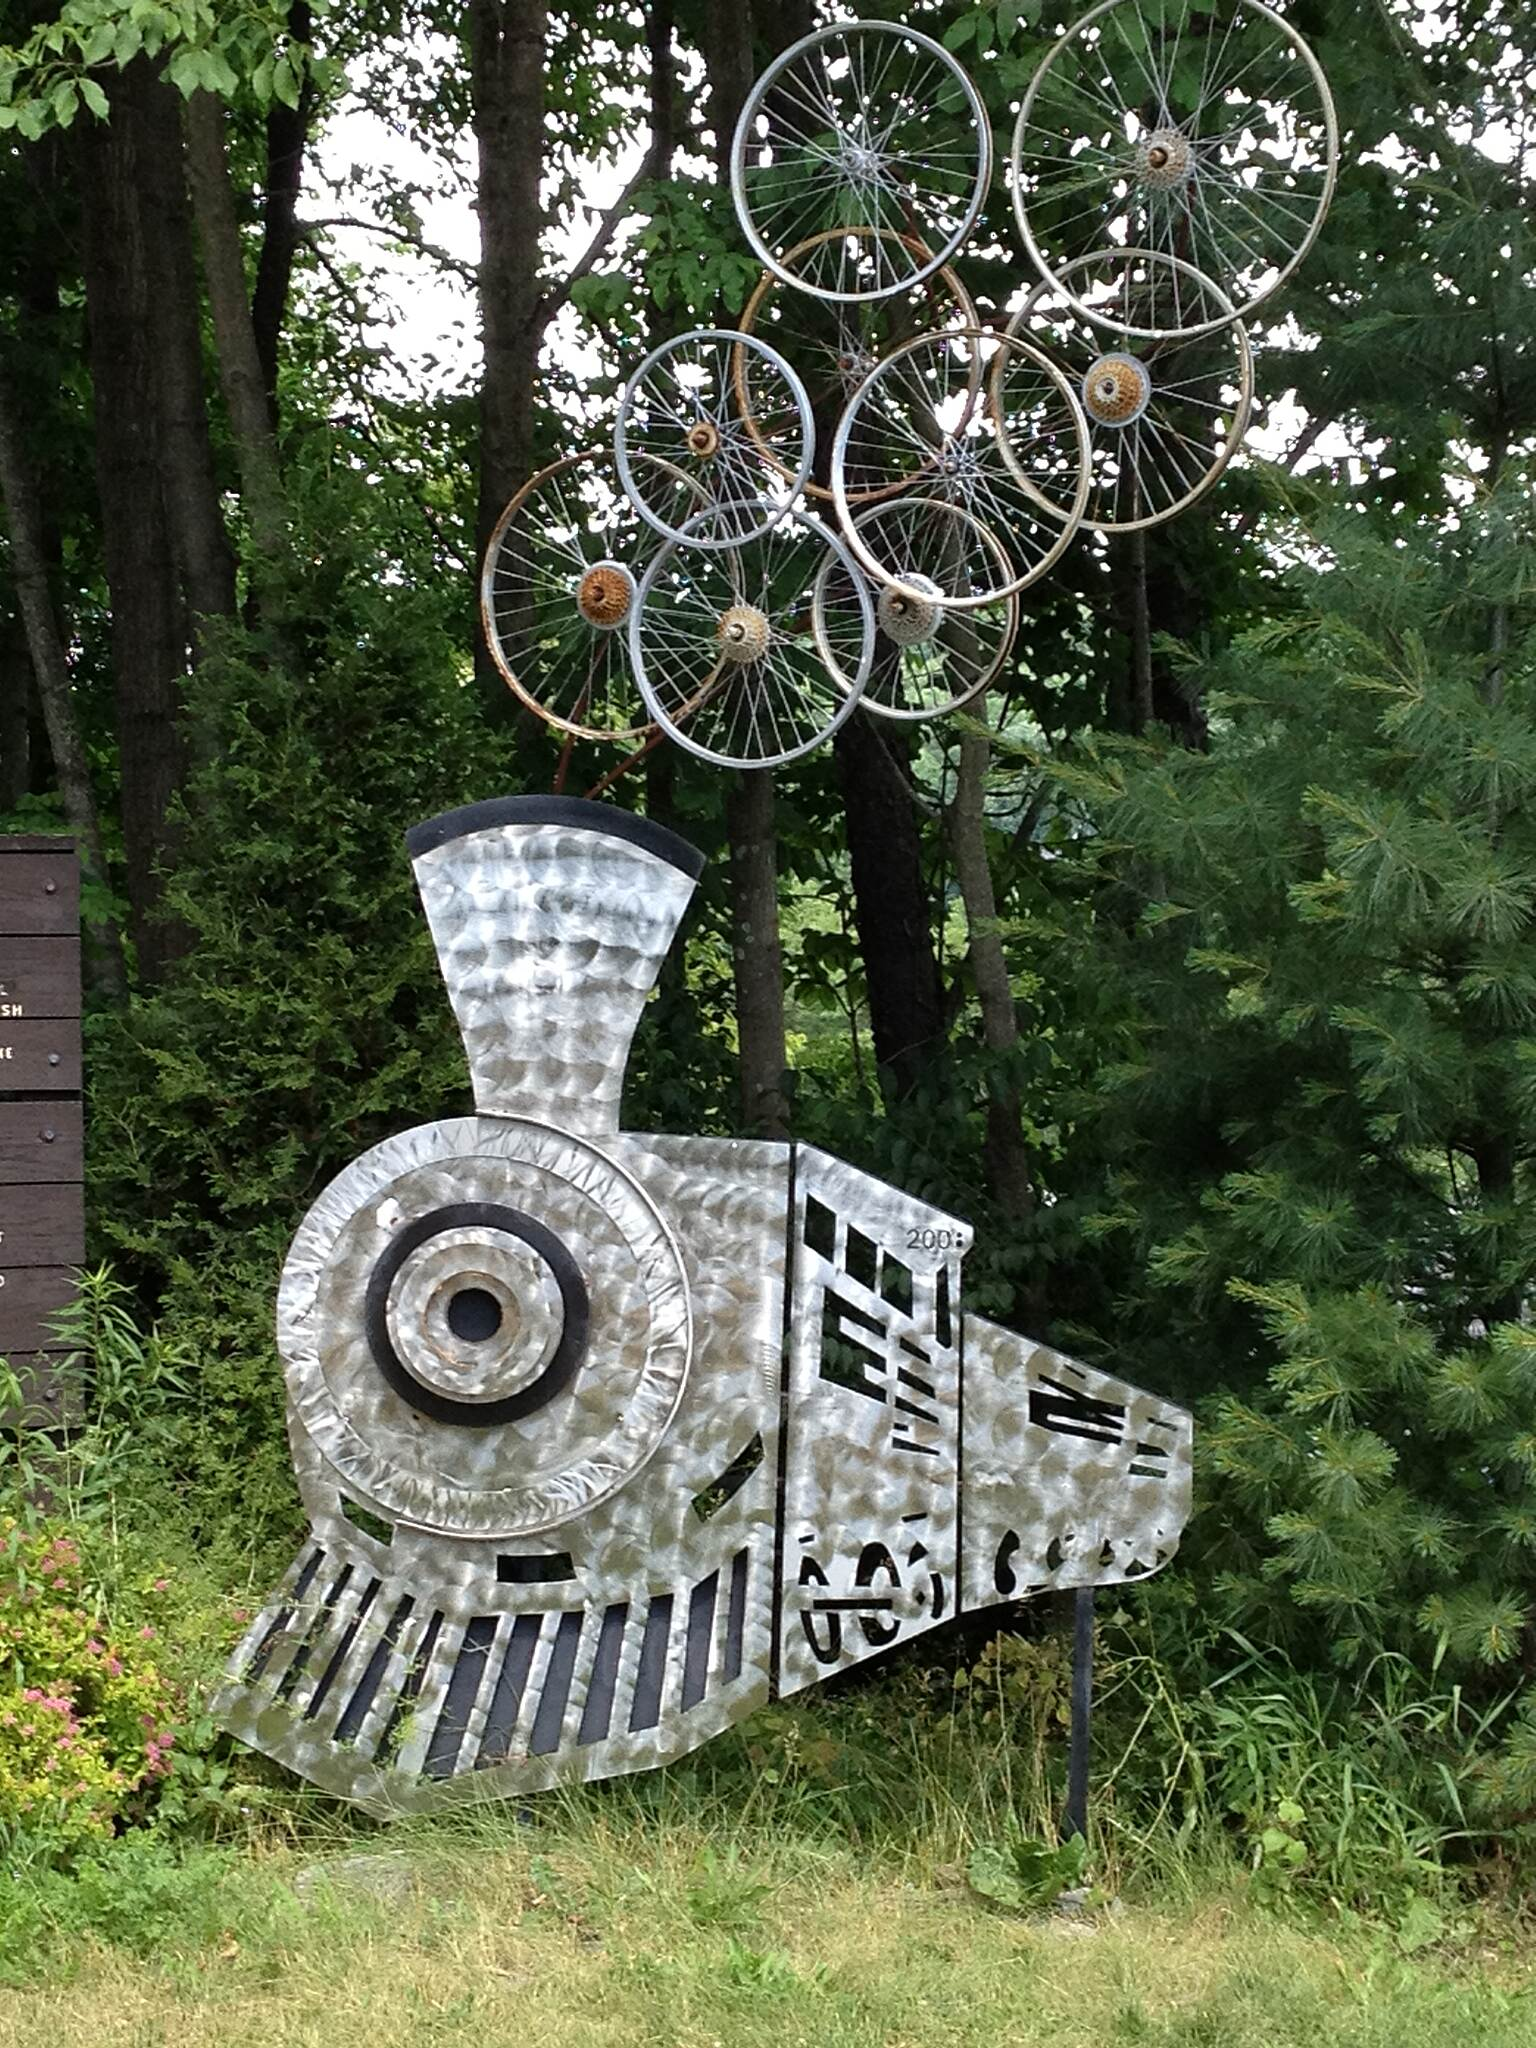 Great Allegheny Passage RailTrail Artist Sculpture- Rockwood, PA One of the many sweet surprises along the G.A.P!